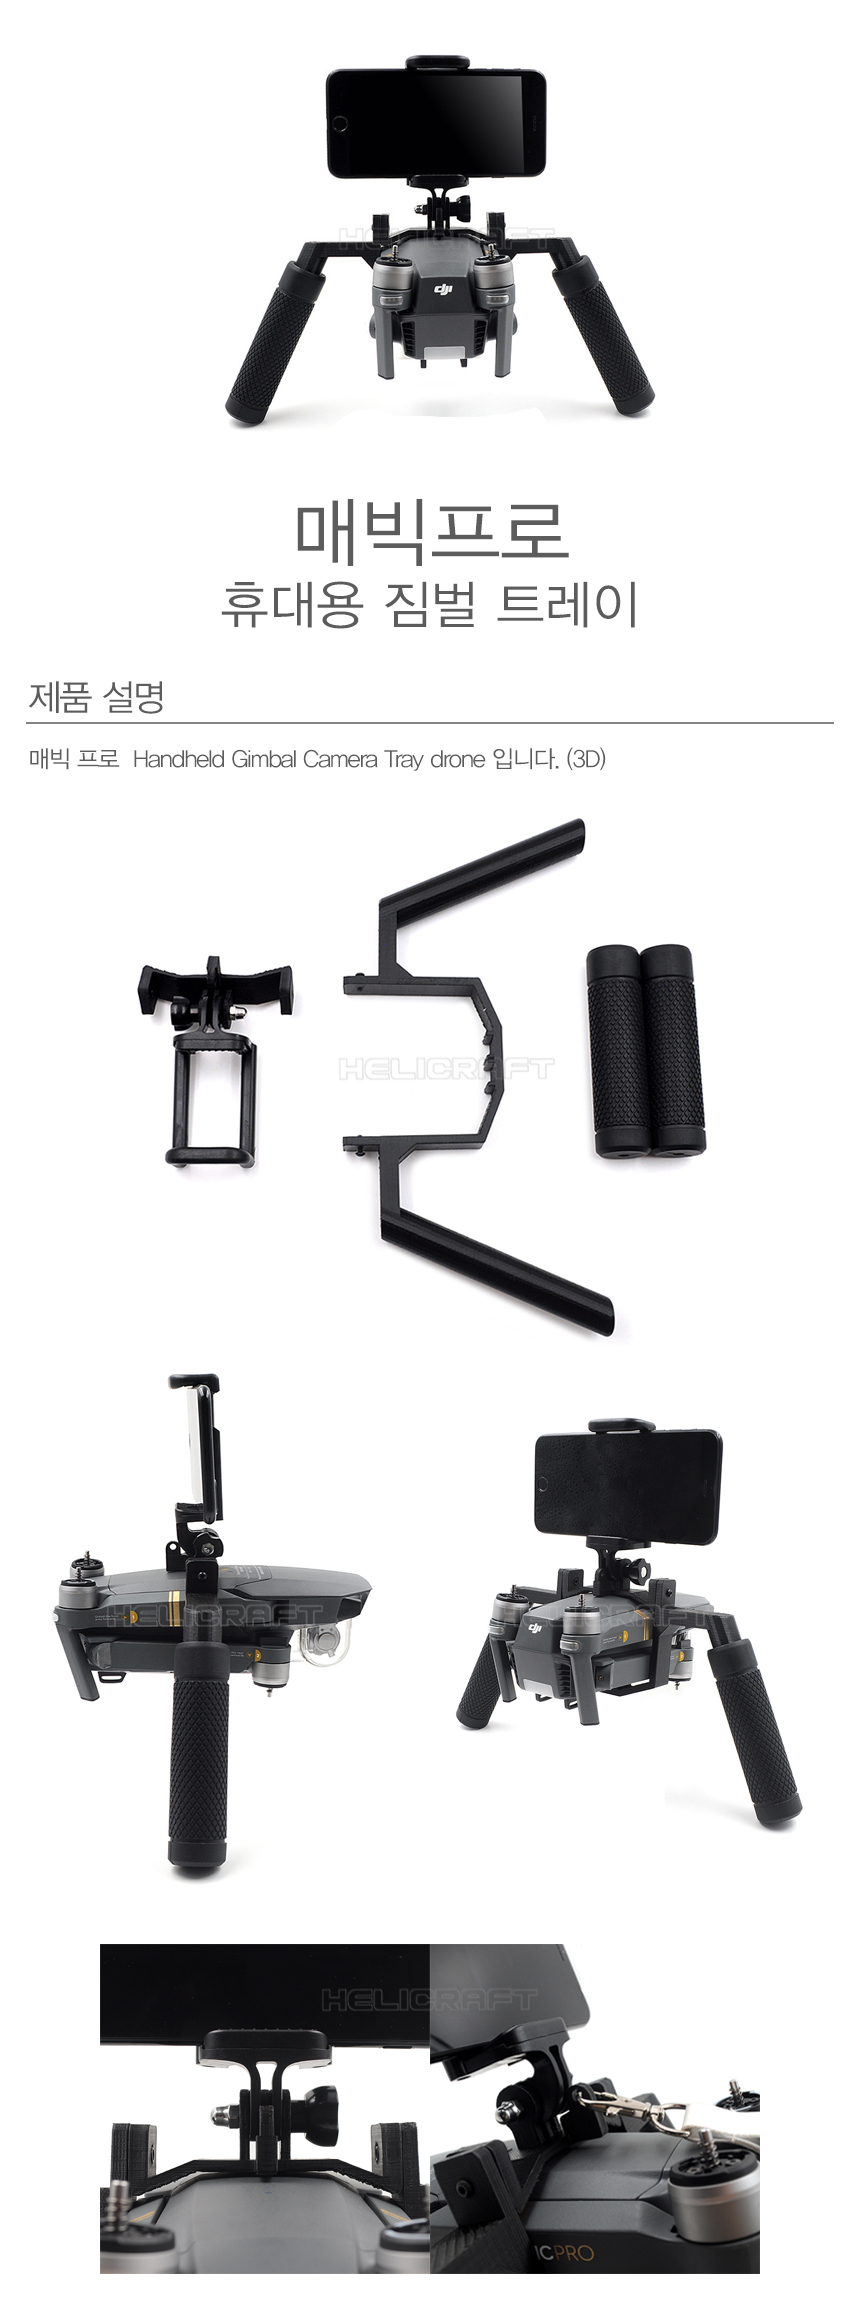 DJI 매빅프로 핸드짐벌 트레이 Mavic Pro Hand Gimbal Camera Tray for DJI